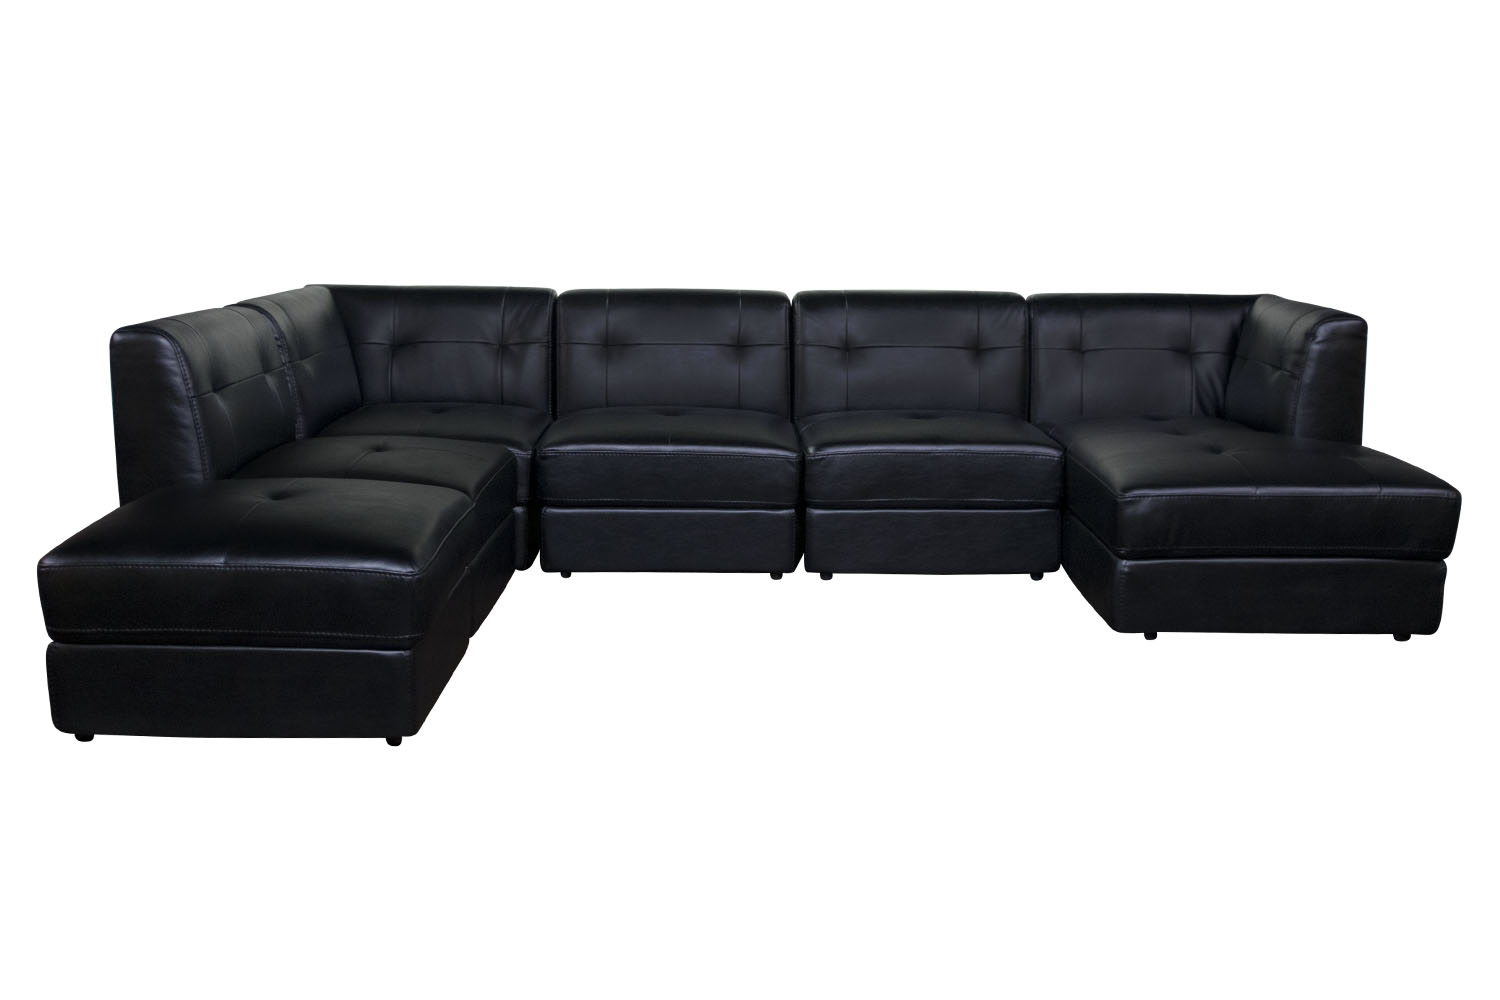 080638708 Ed 6 Piece Right Facing Sectional In Black